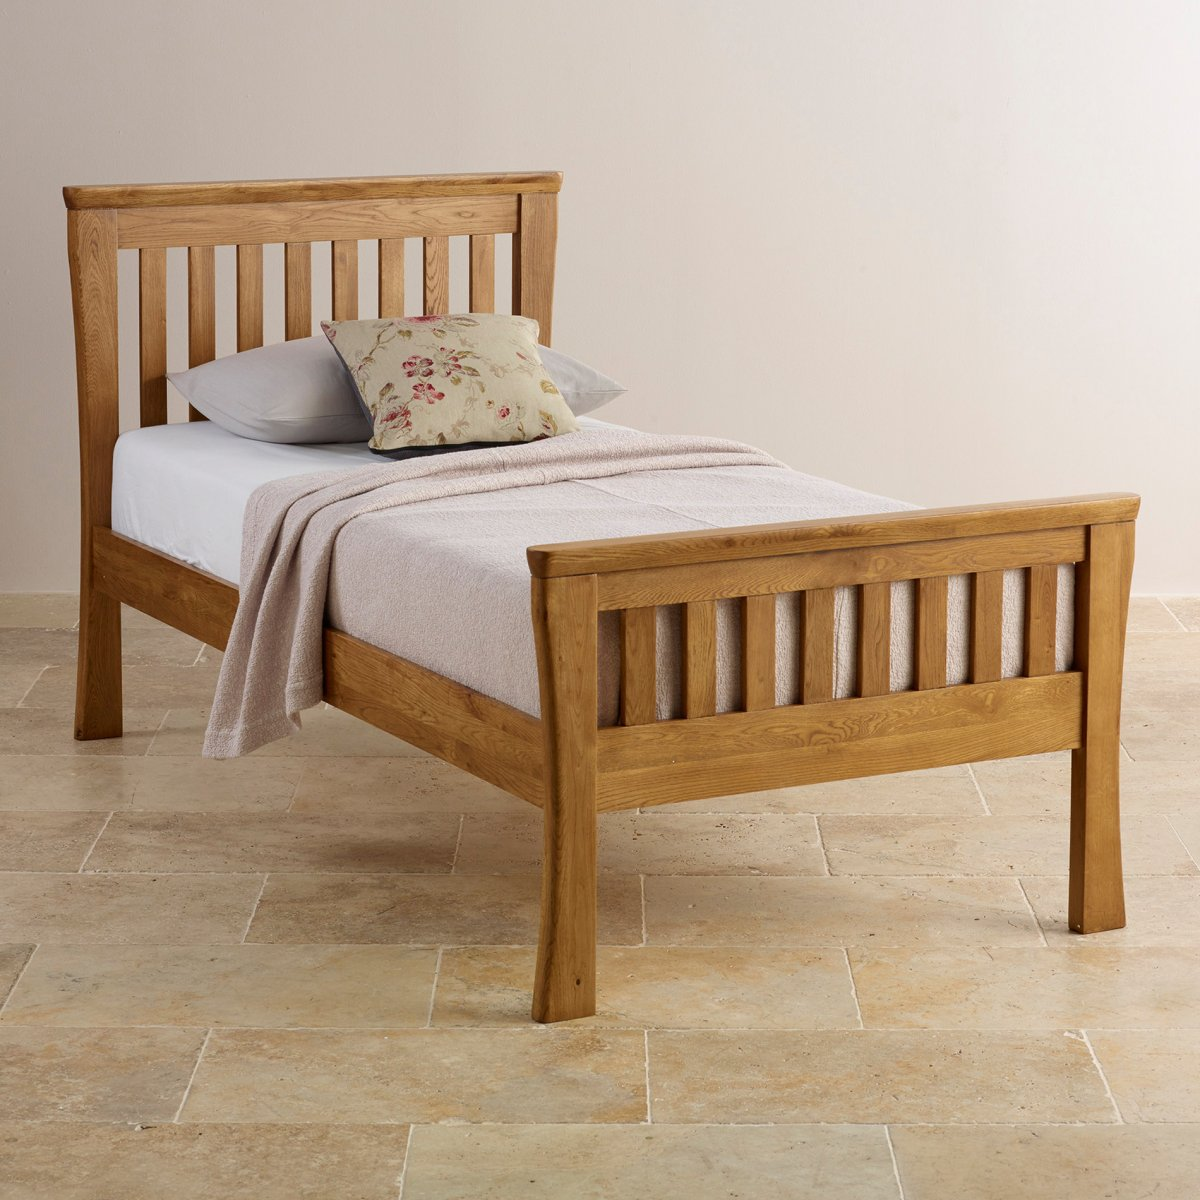 Oak Furniture Land Bedroom Furniture Orrick Single Bed Solid Oak Oak Furniture Land